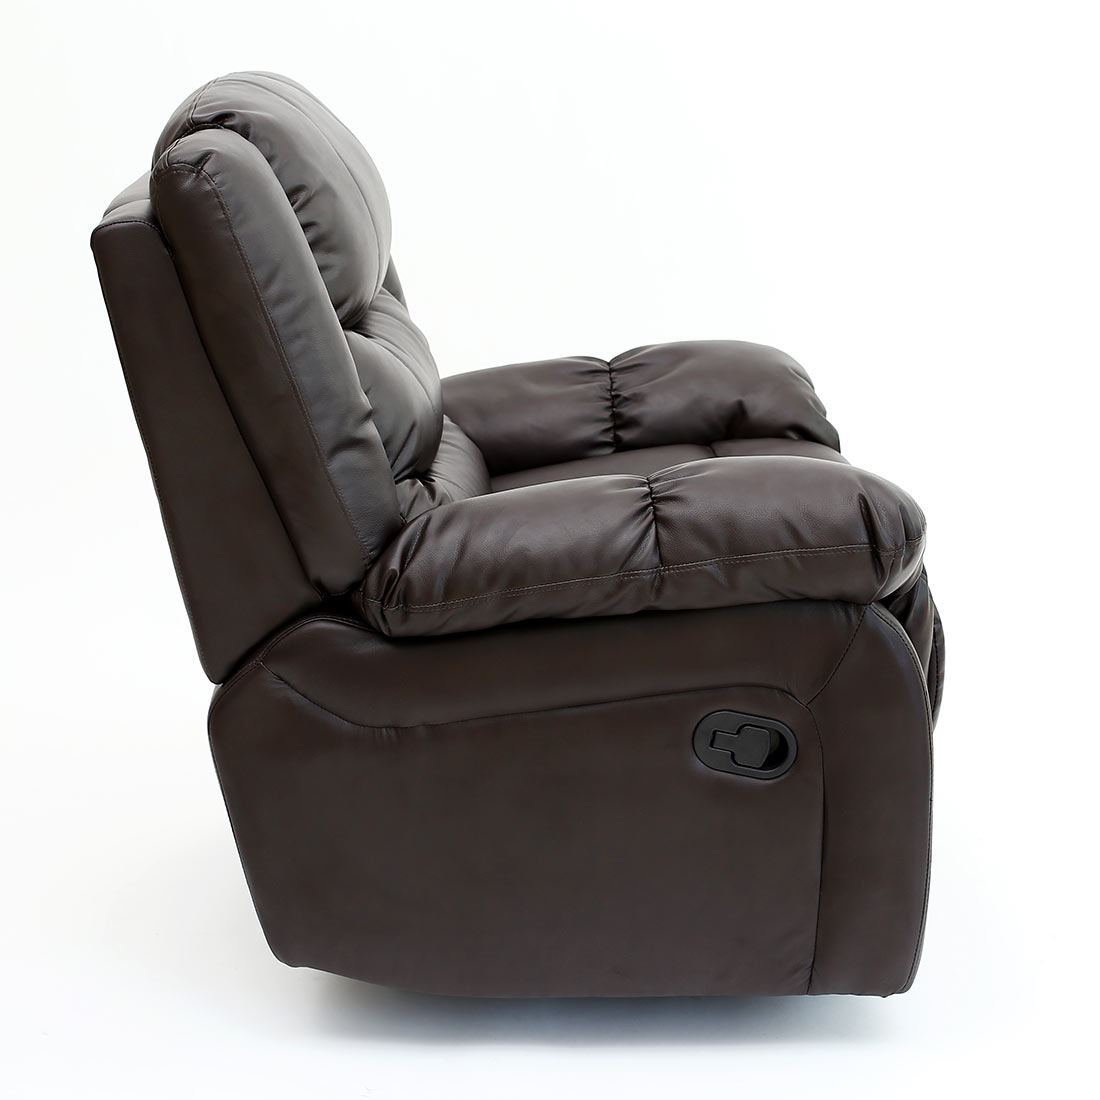 recliner gaming chair stackable resin wicker chairs seattle leather armchair sofa home lounge